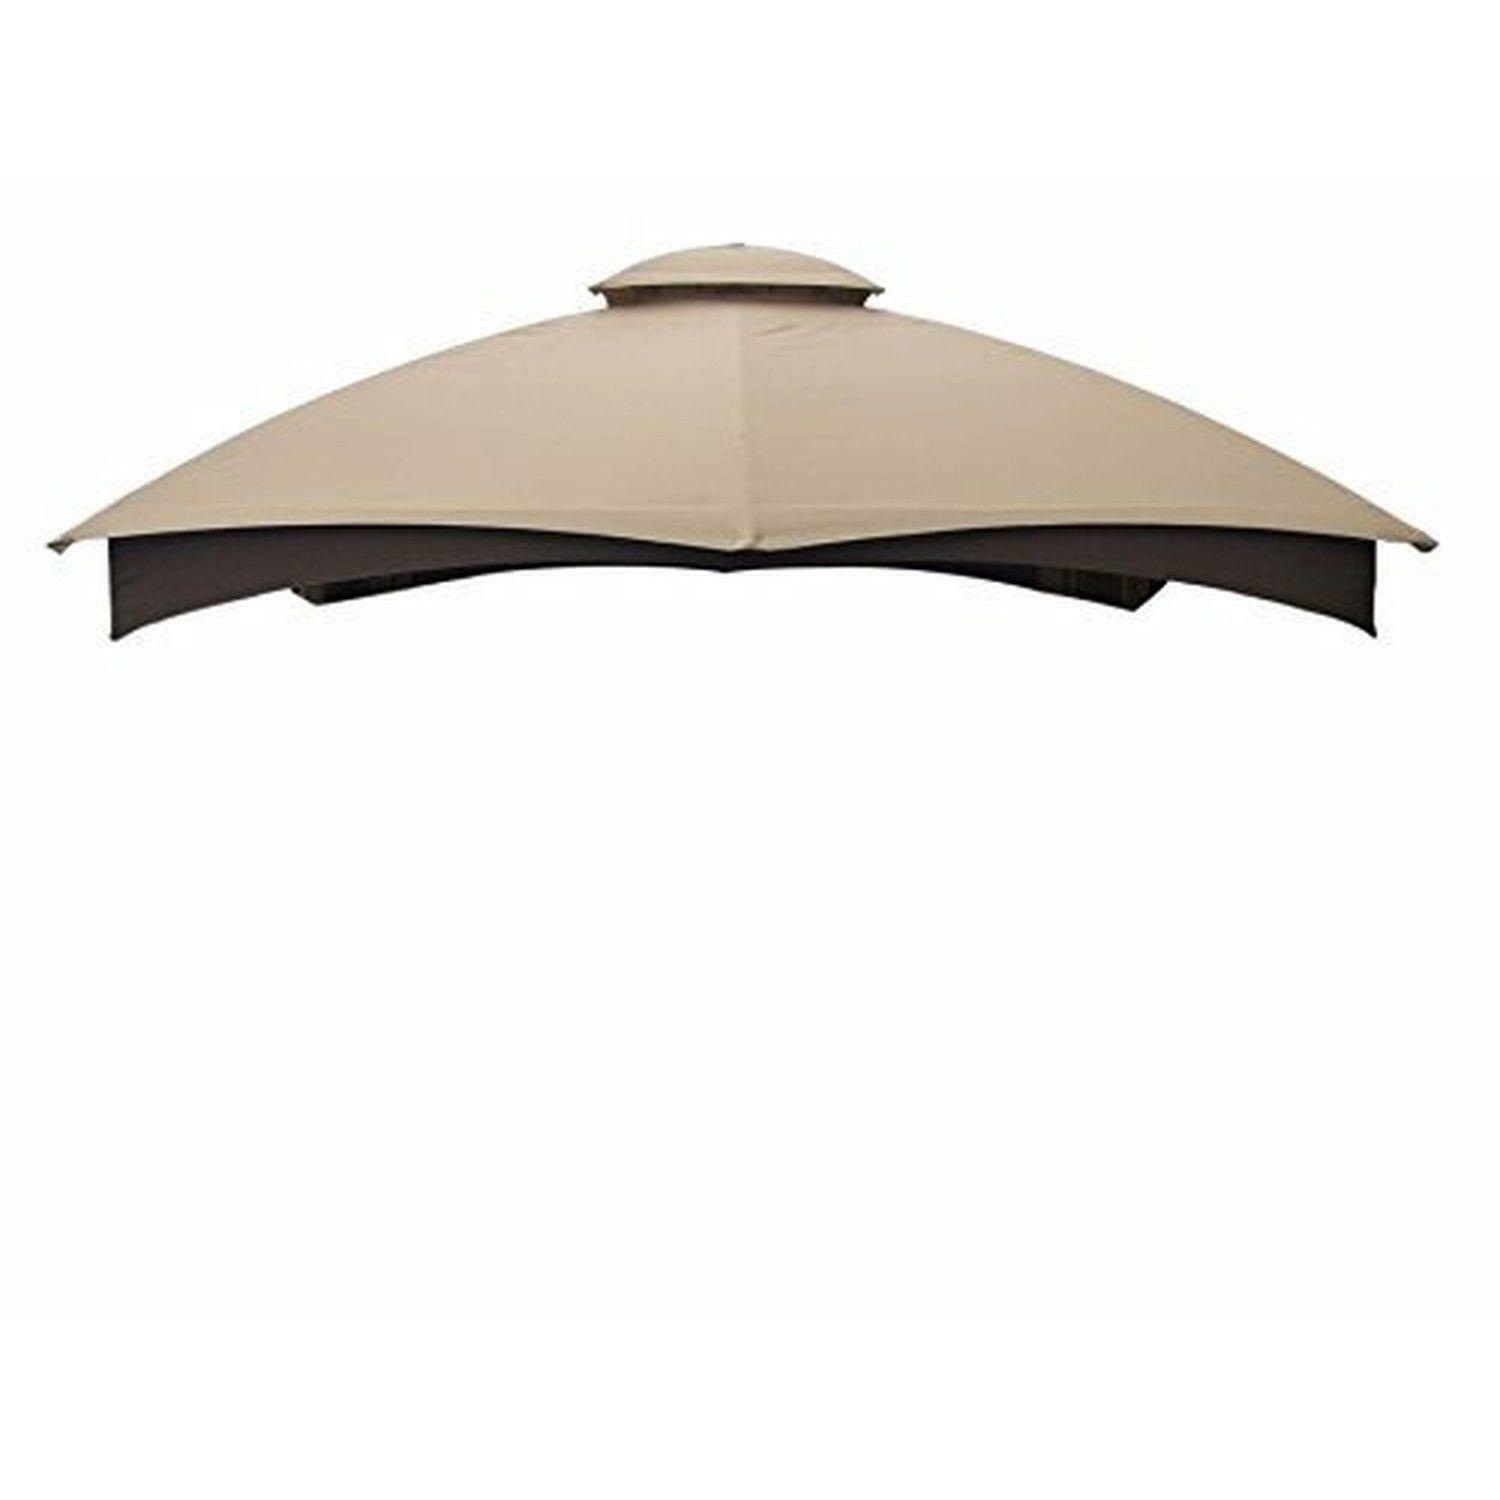 Apex Garden Replacement Canopy Top for Lowes Allen Roth 10x12 Gazebo  sc 1 st  eBay : canopies at lowes - memphite.com